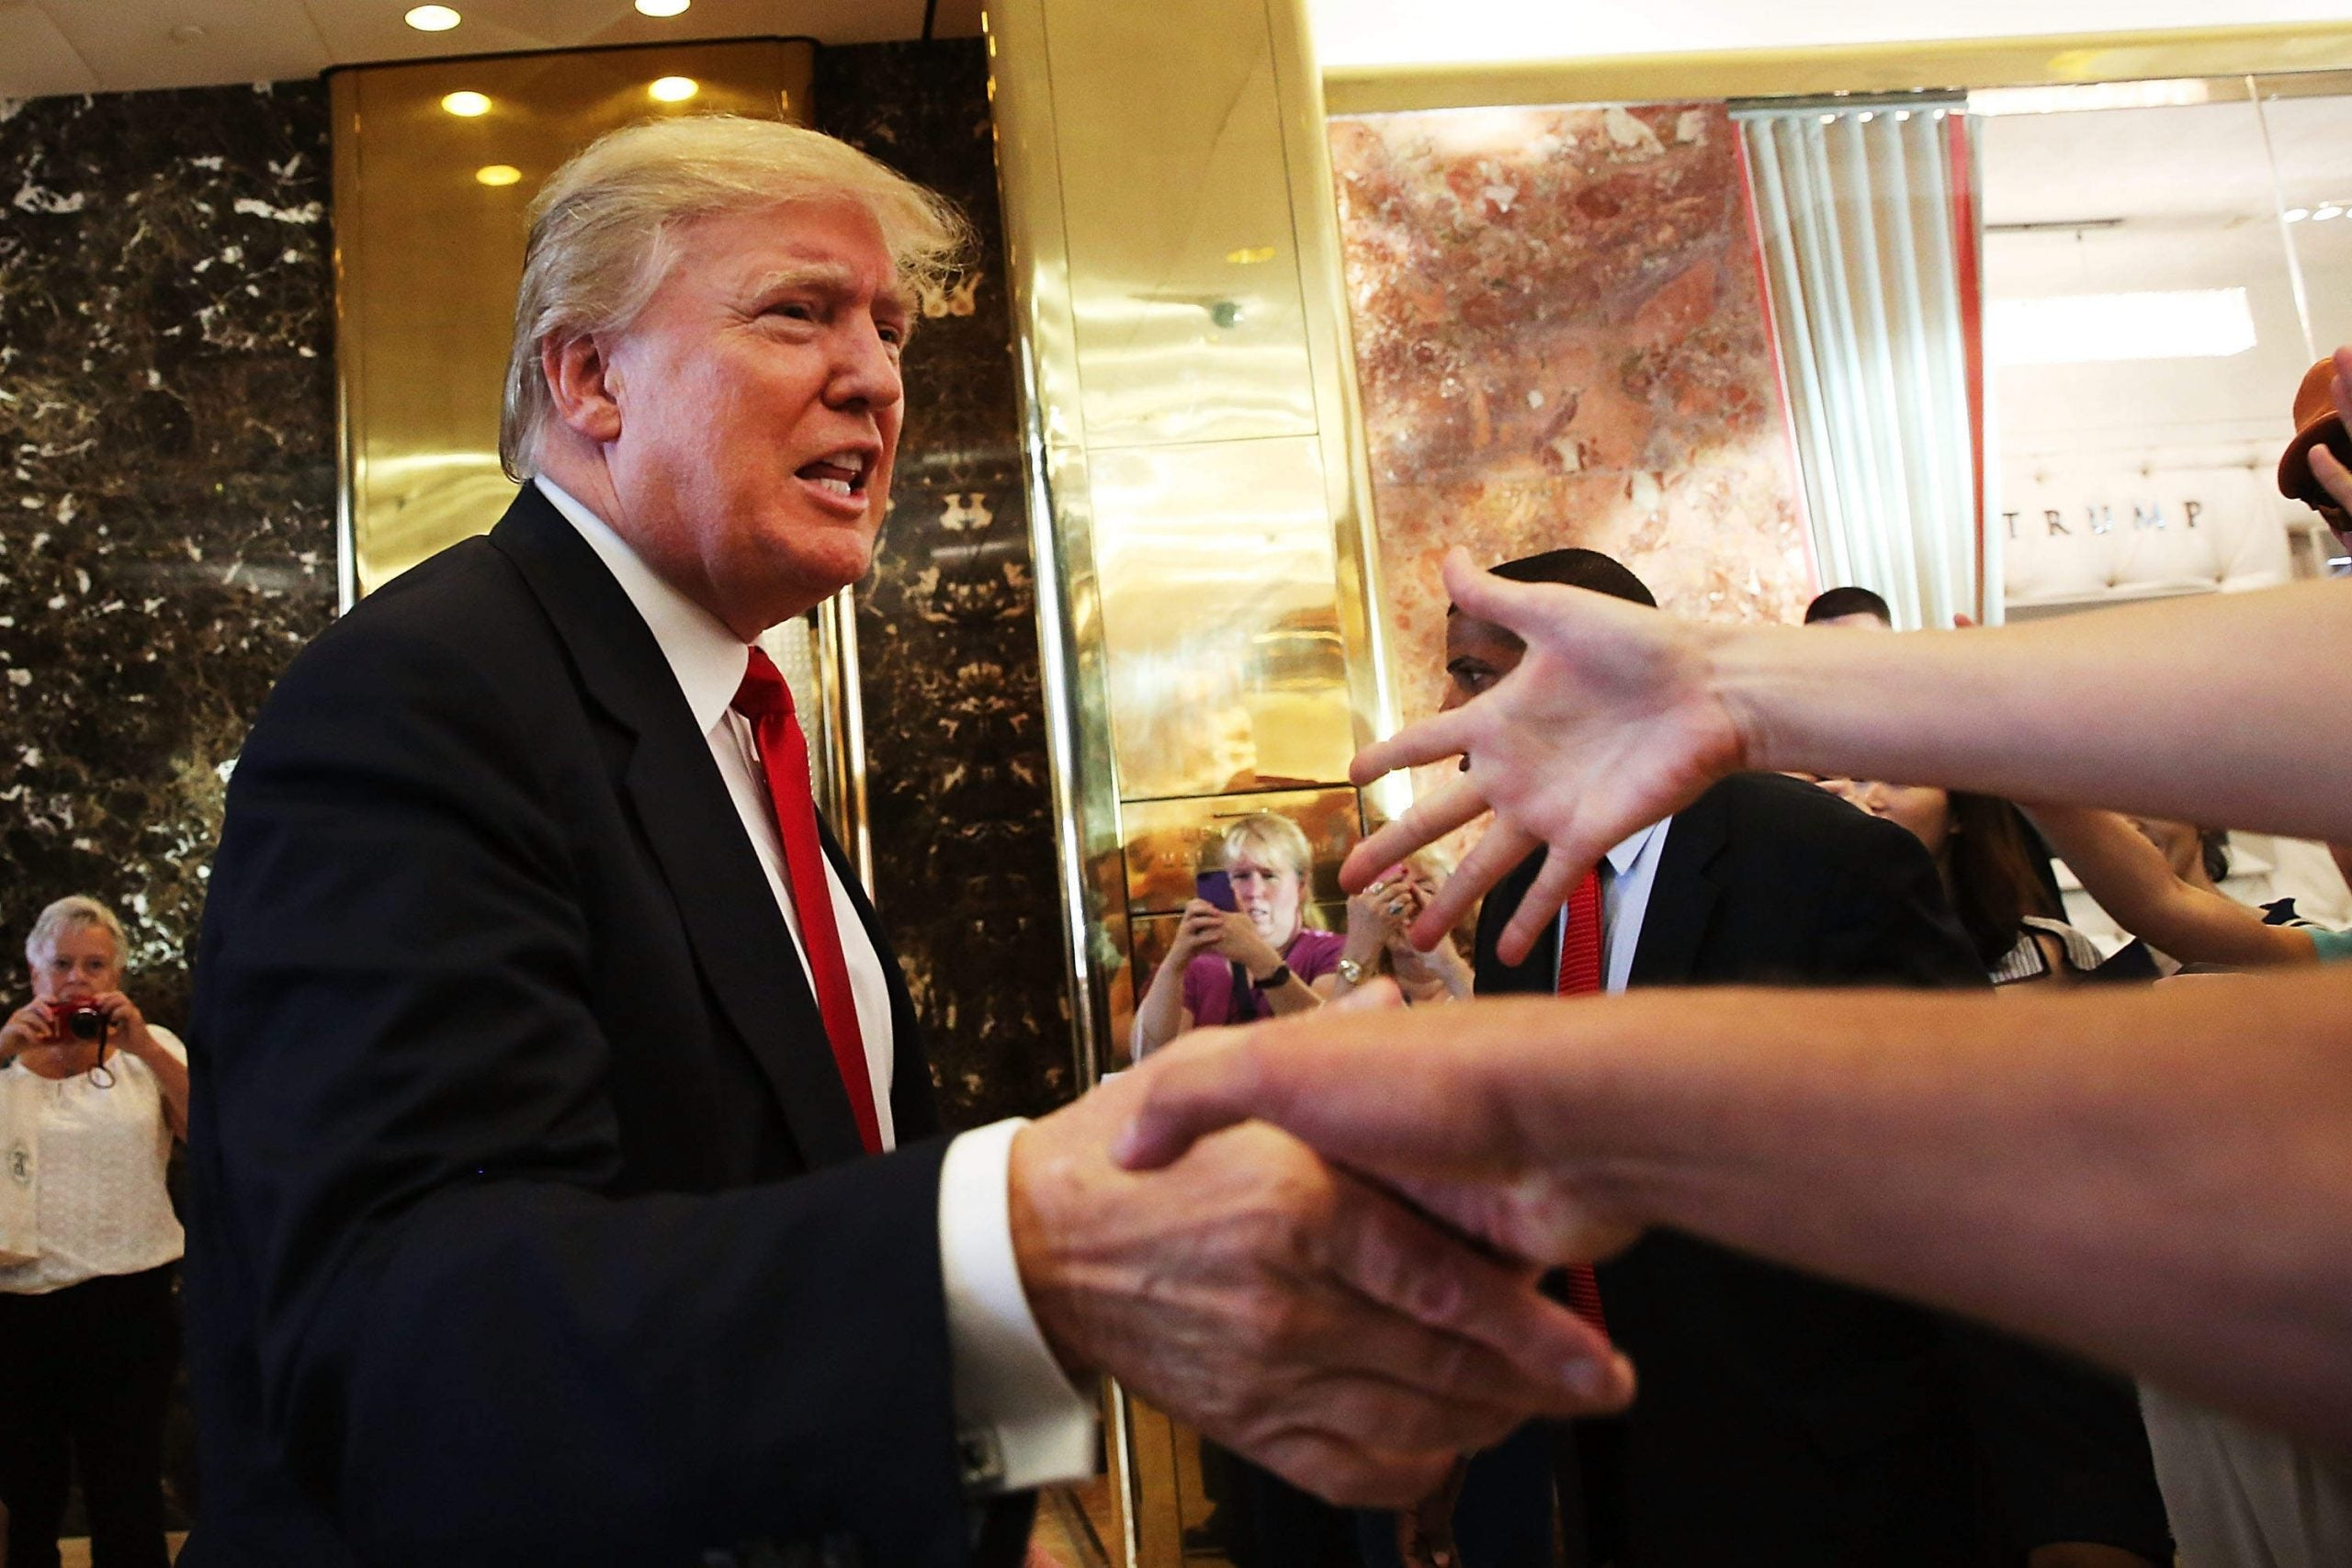 US election 2016: Donald Trump's sleazy fumble for power is damaging democracy